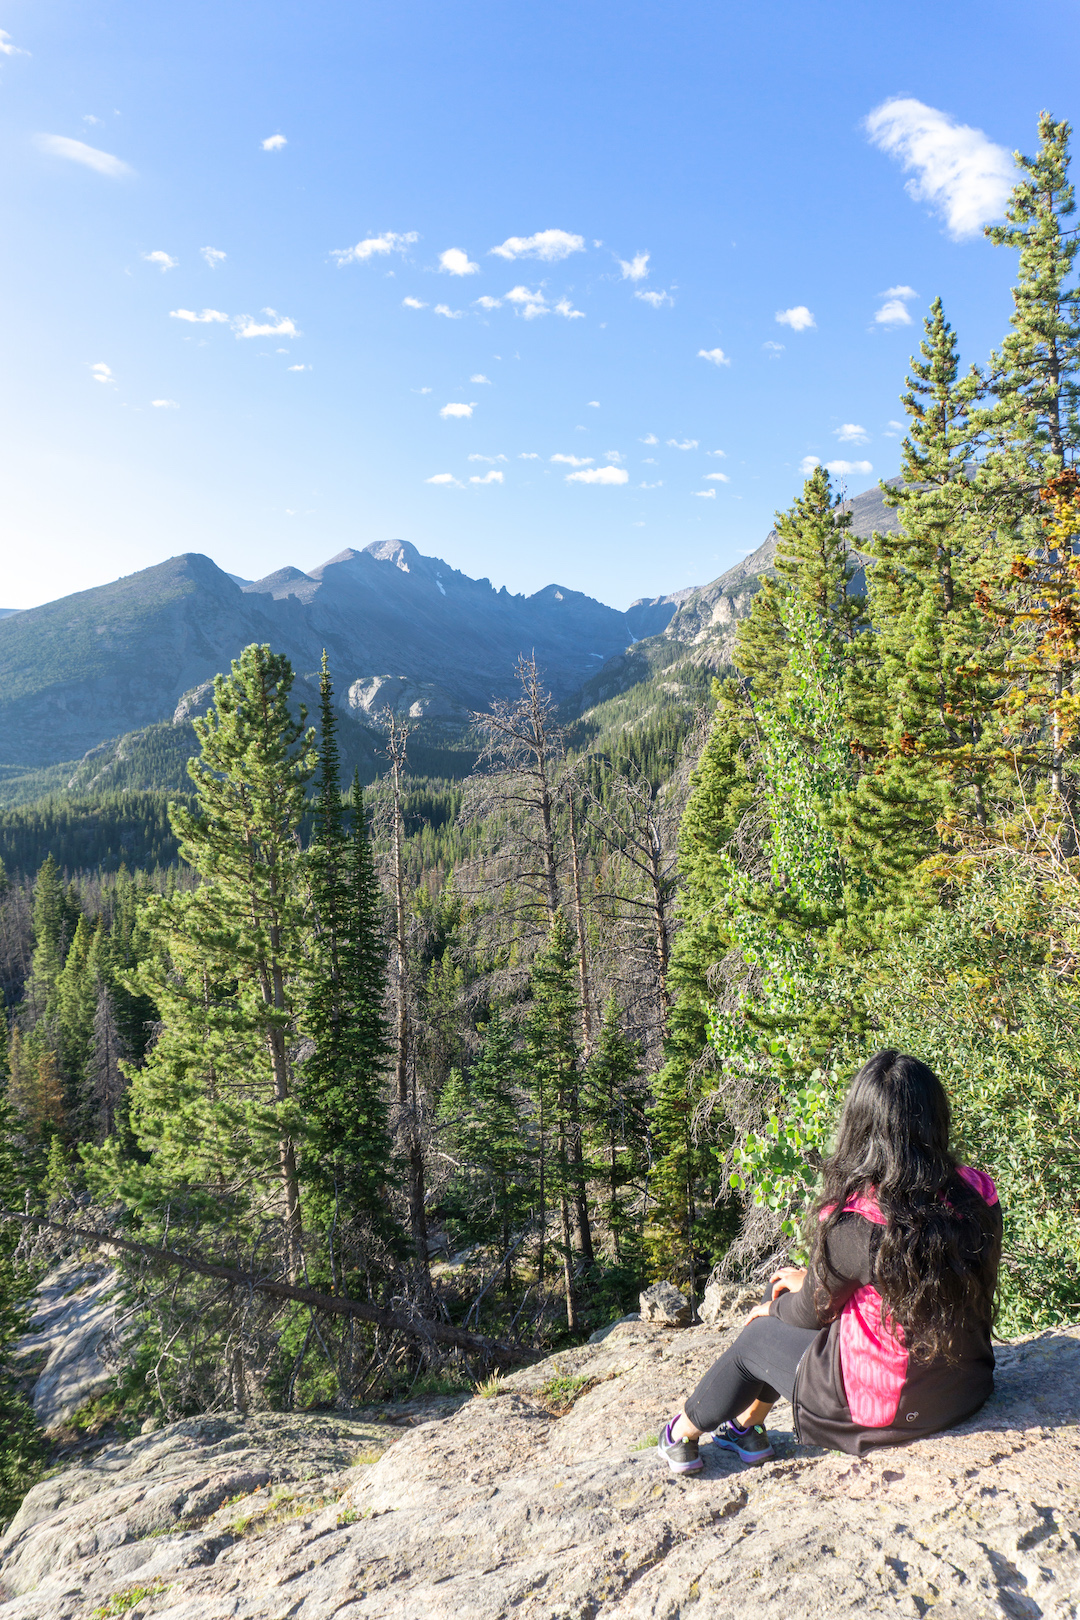 Her_Travel_Edit_Rocky_Mountains_Hiking